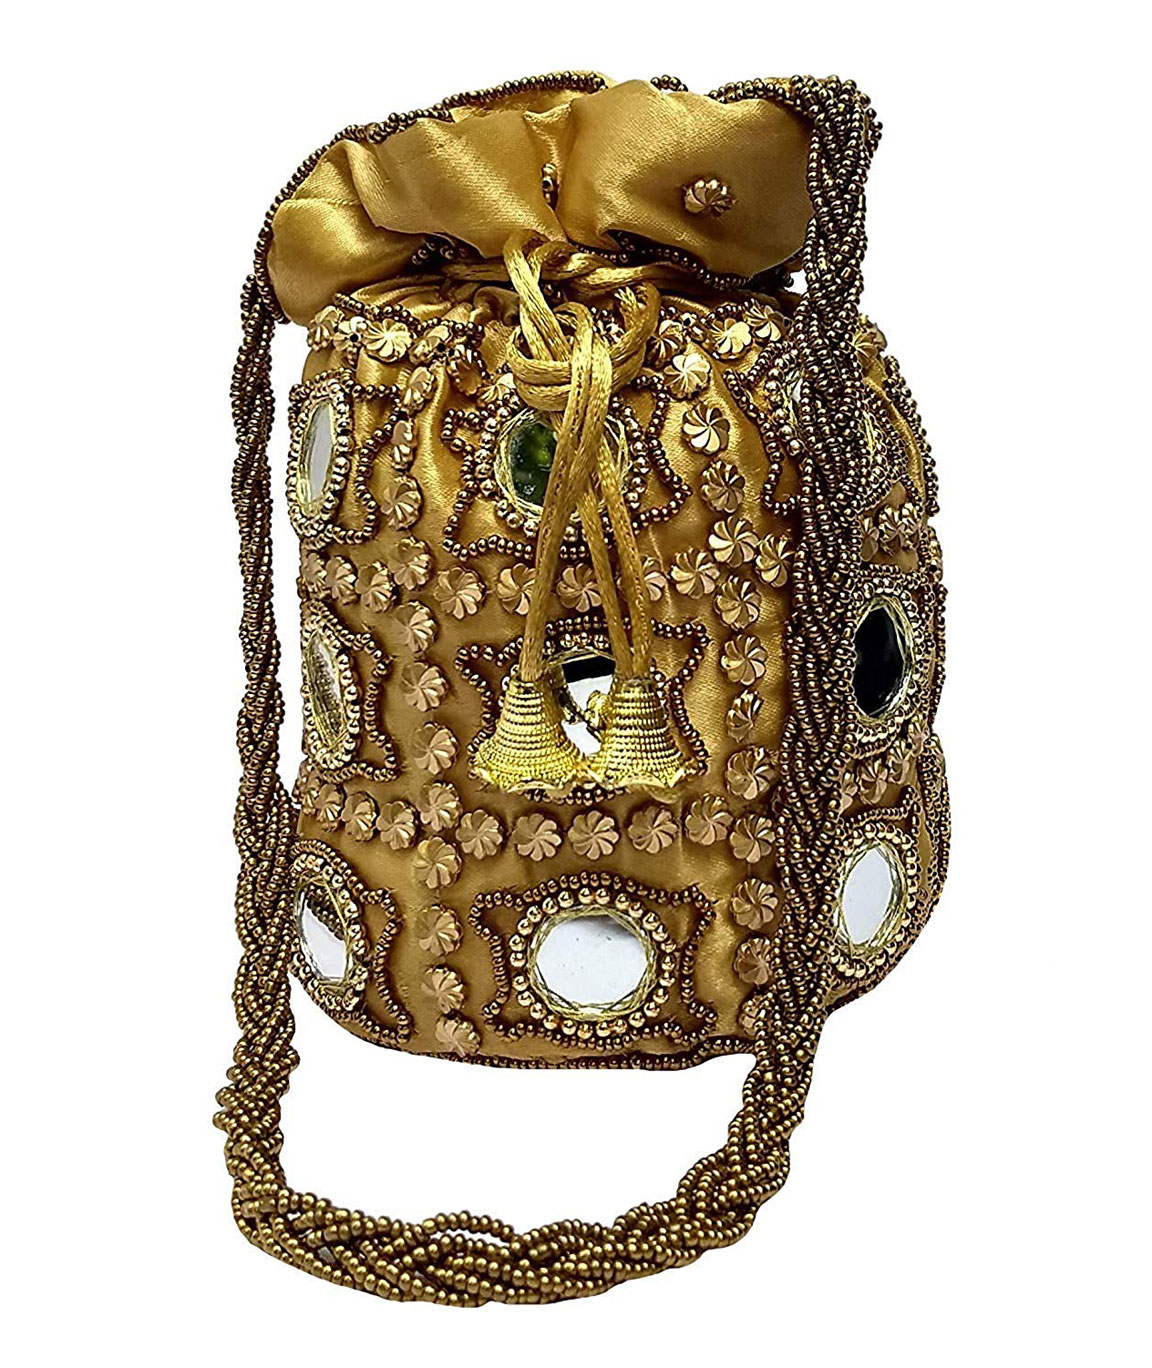 DN Enterprises Designer Potli Bag with Beadwork For Women Silk Fabric Standard Size Single Bag(gold)